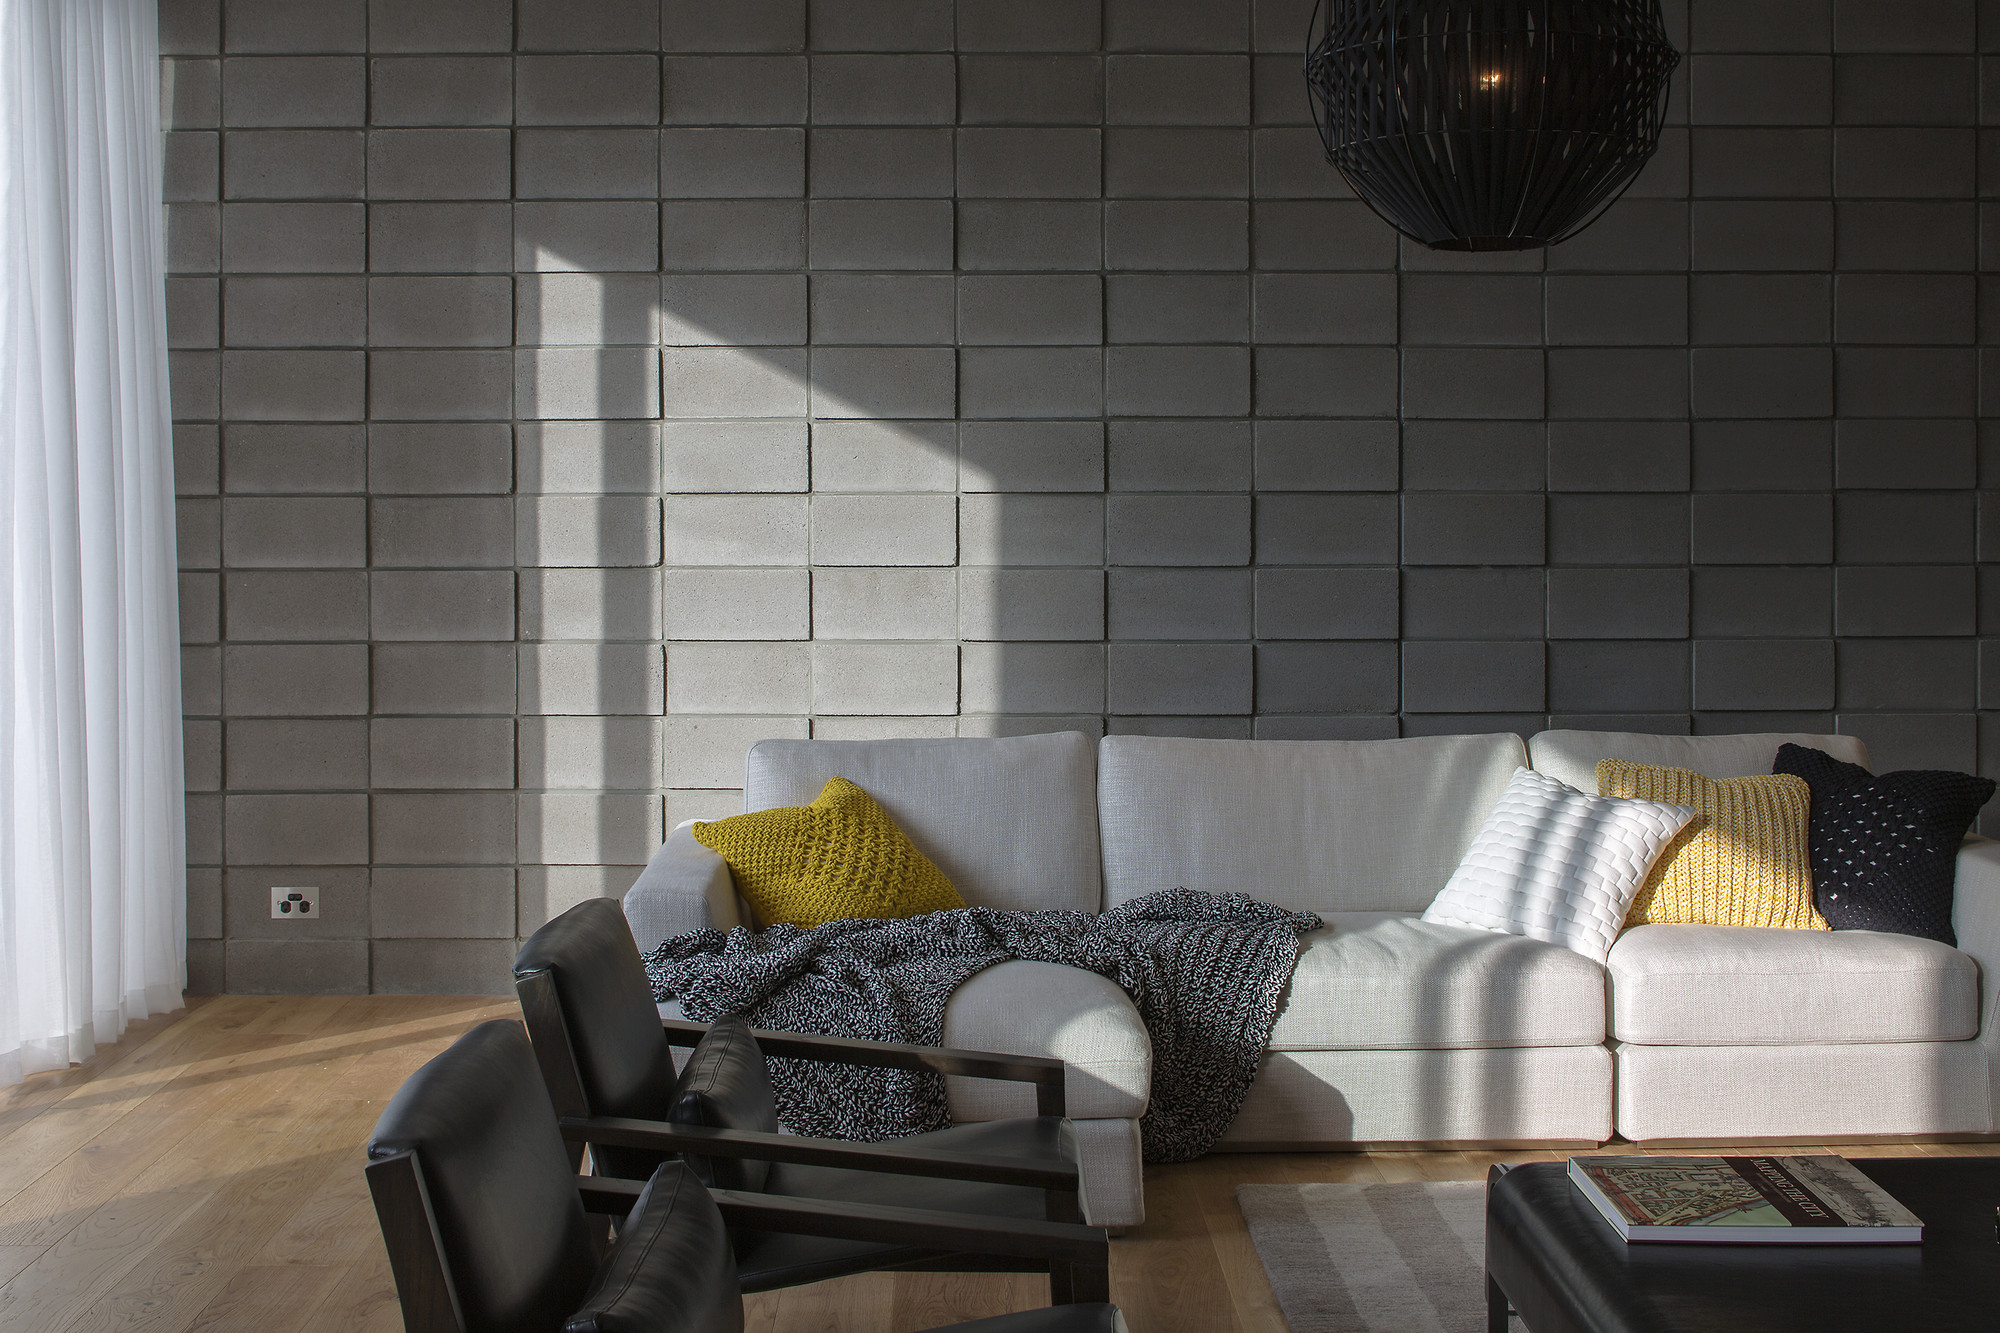 Cinder Block Wall Design | Home Design Ideas